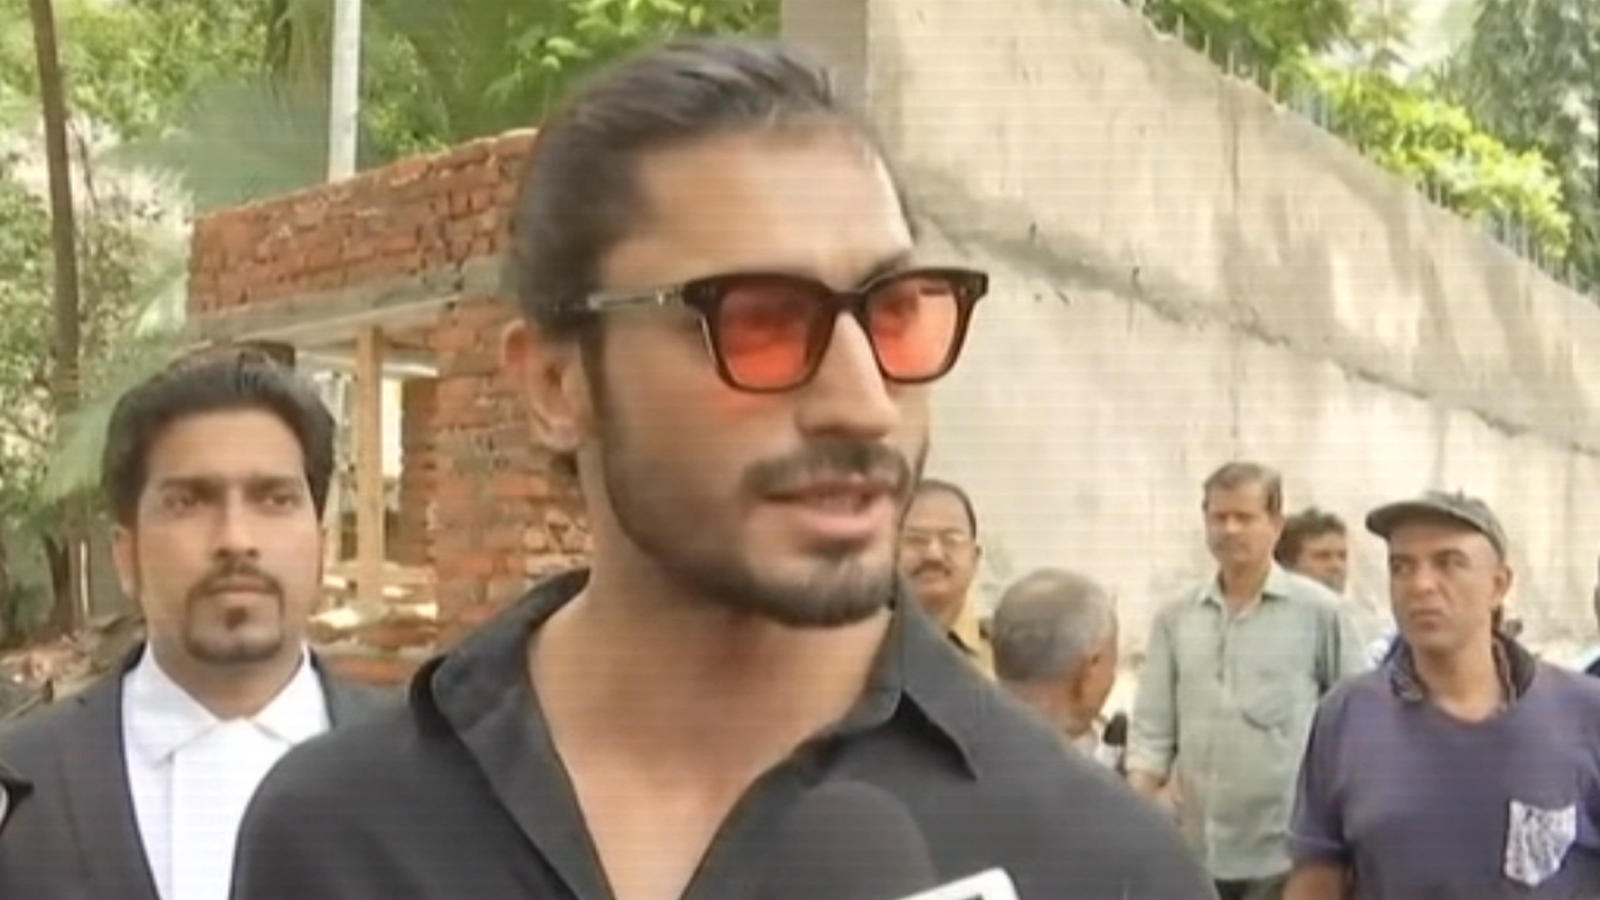 Vidyut Jammwal acquitted in 12-year-old assault case